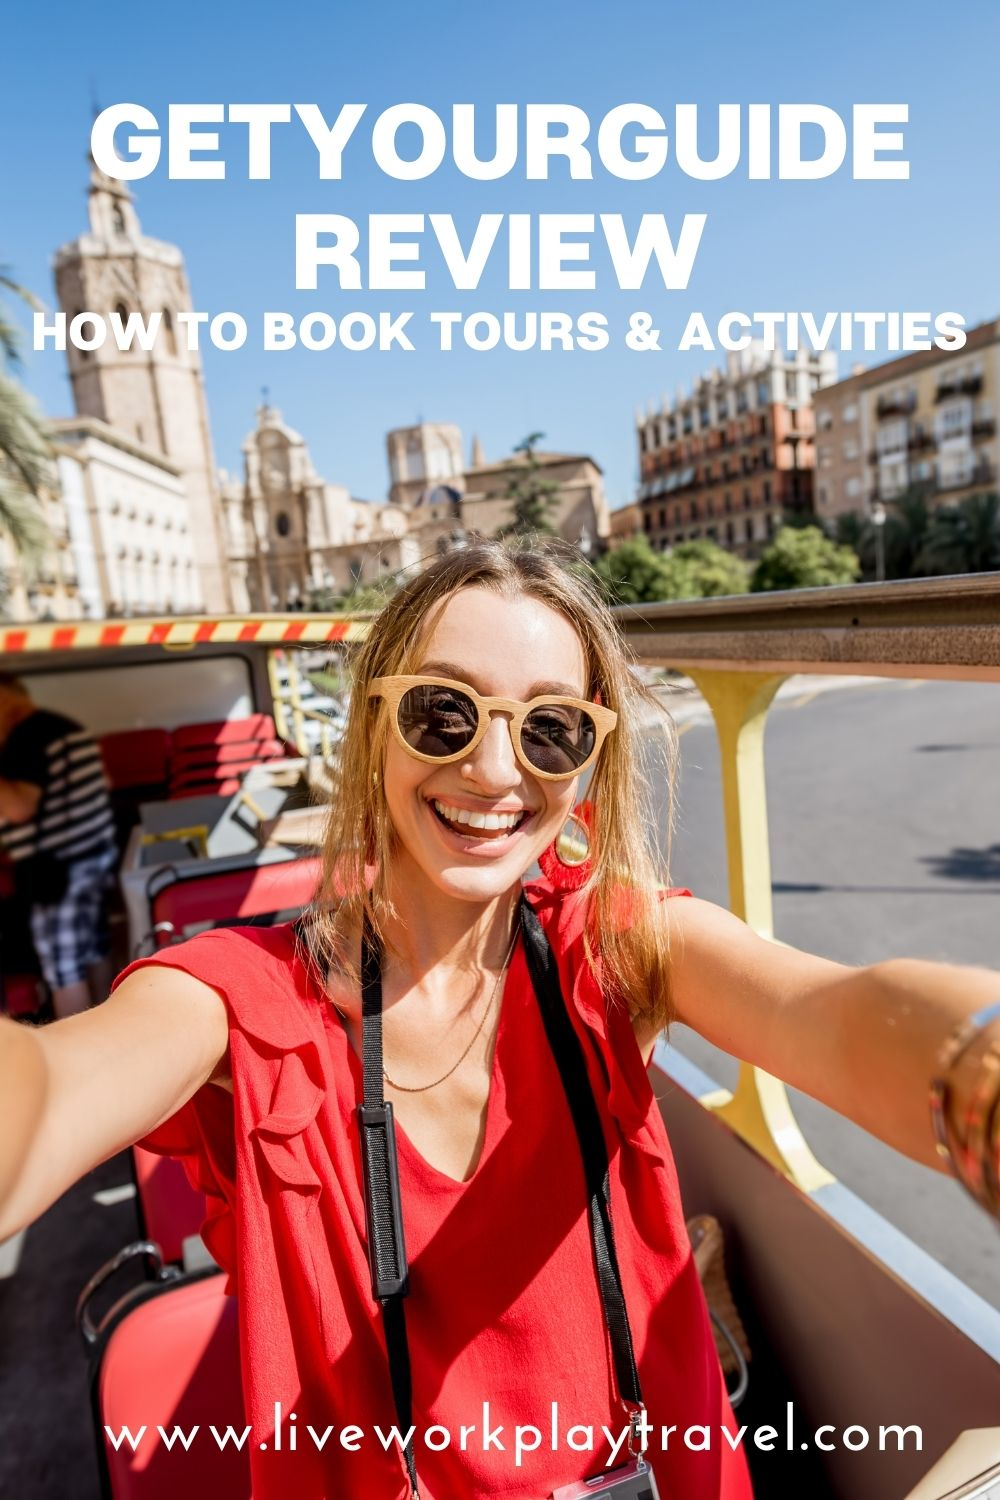 Girl On A Tour Booked Through GetYourGuide.